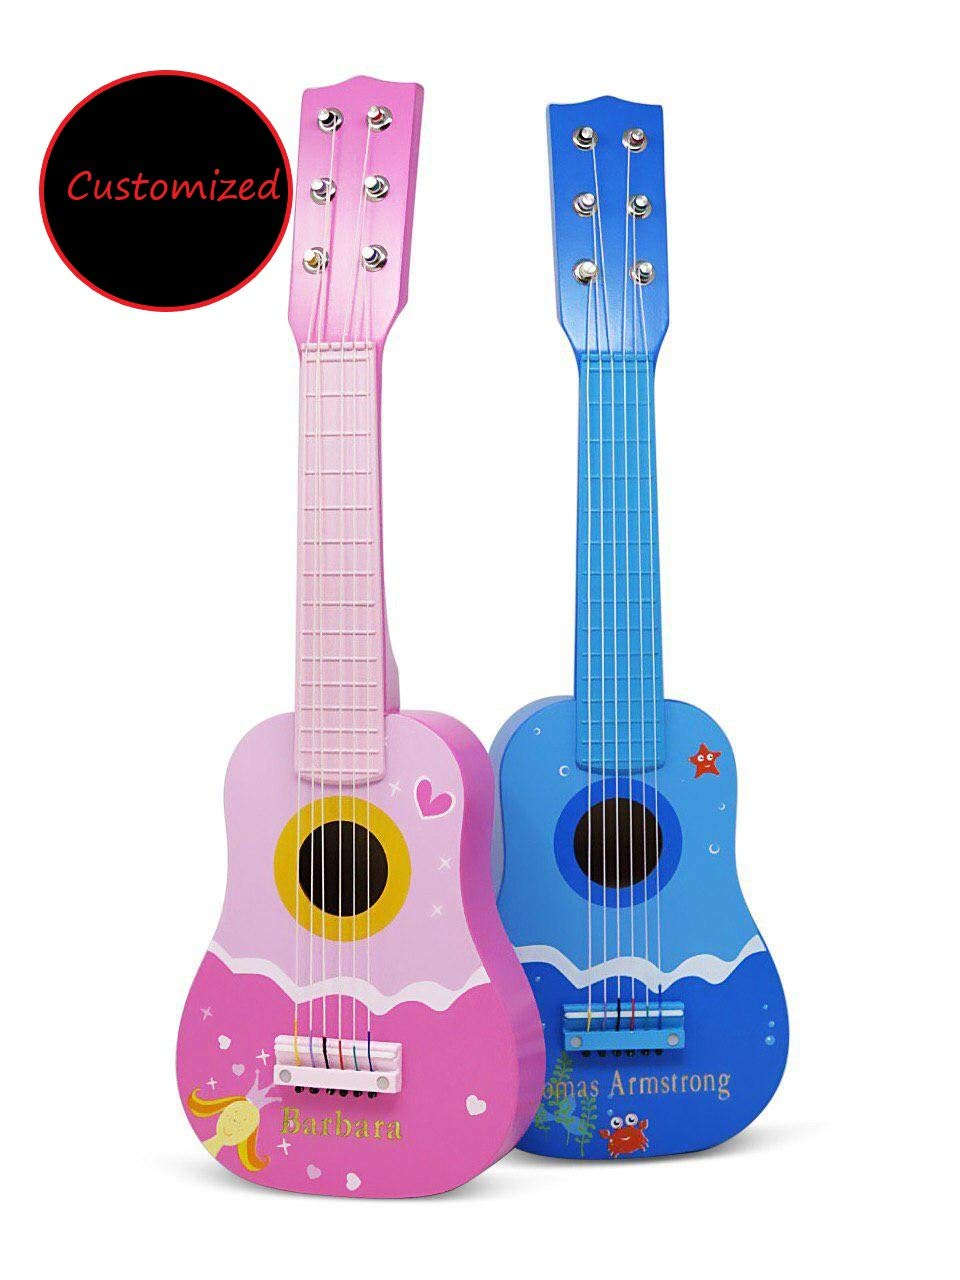 BrightTexts Personalized Kids Guitar, Customized Toy Instrument for Kids, Custom Kids & Toddler Birthday Gift, Personalized Kids Gift Idea by BrightTexts